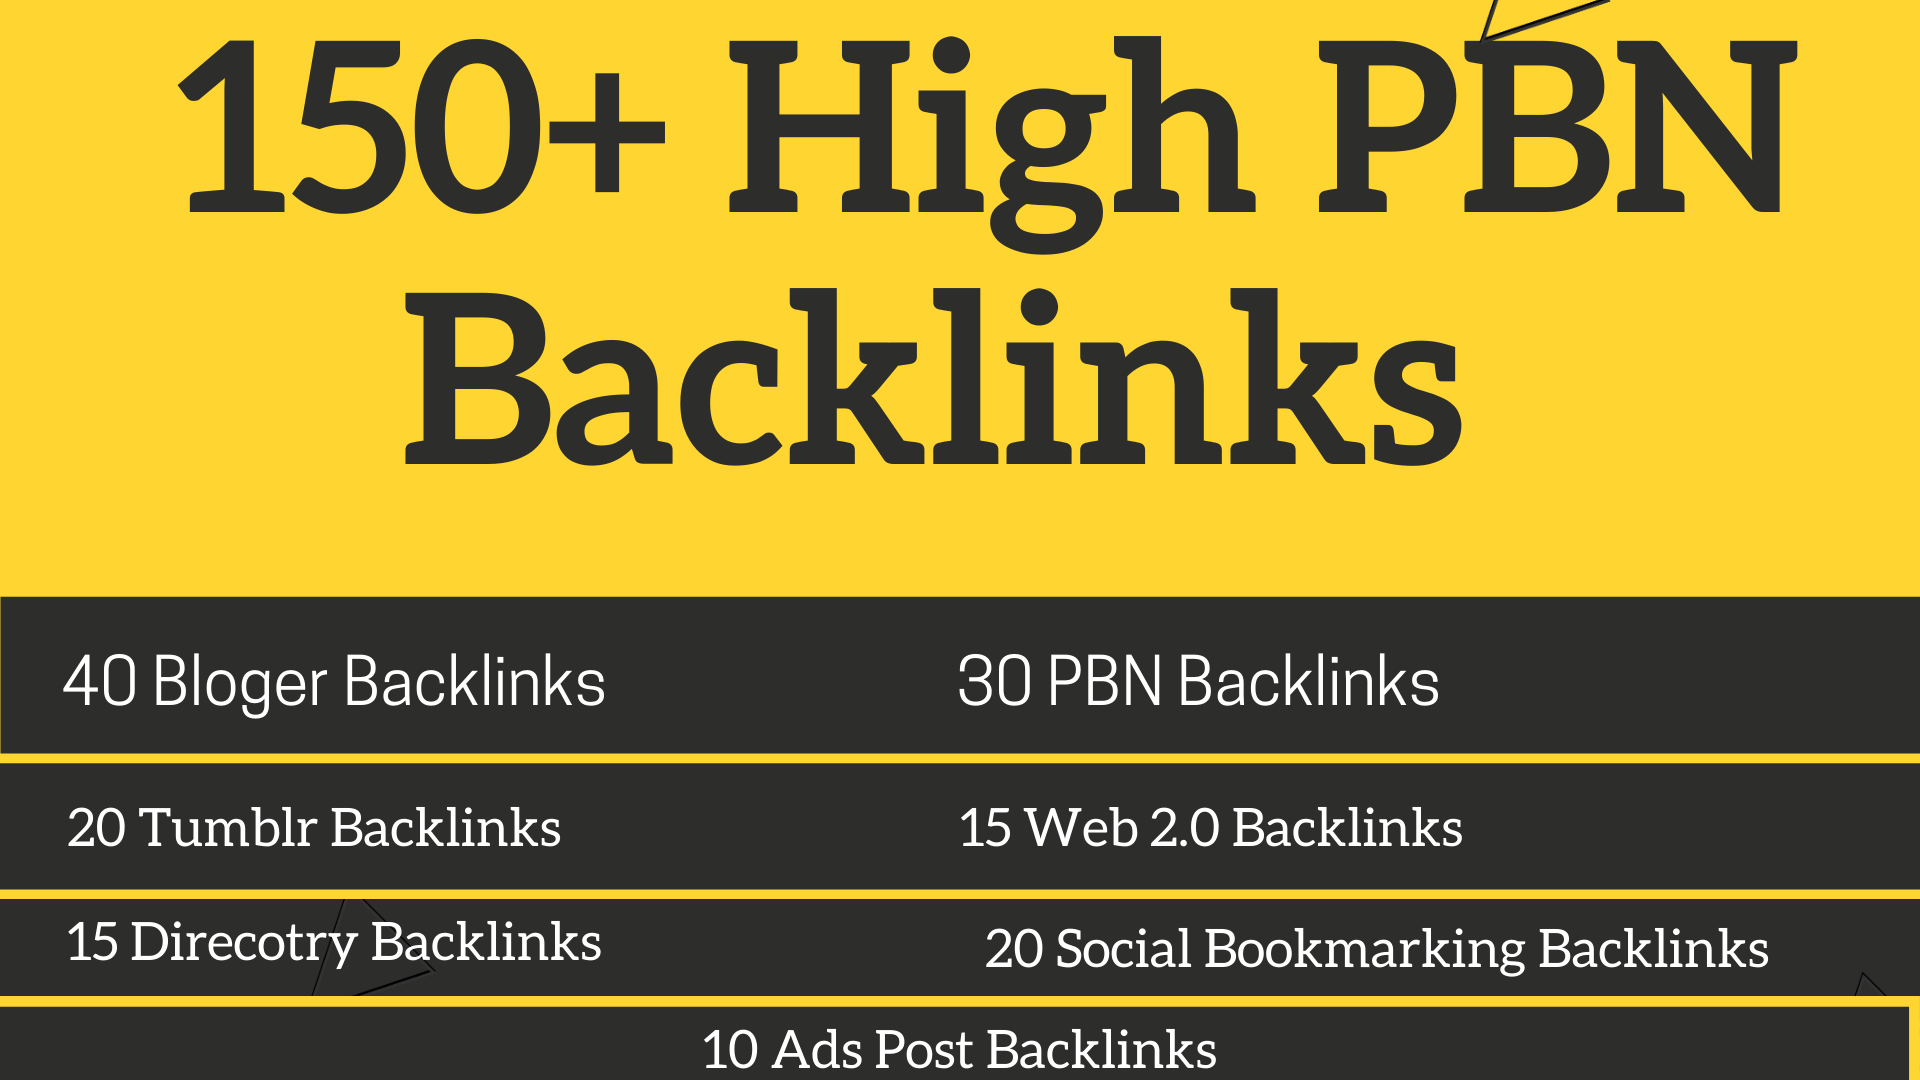 150+ High PBN Backlinks Get rank up your website